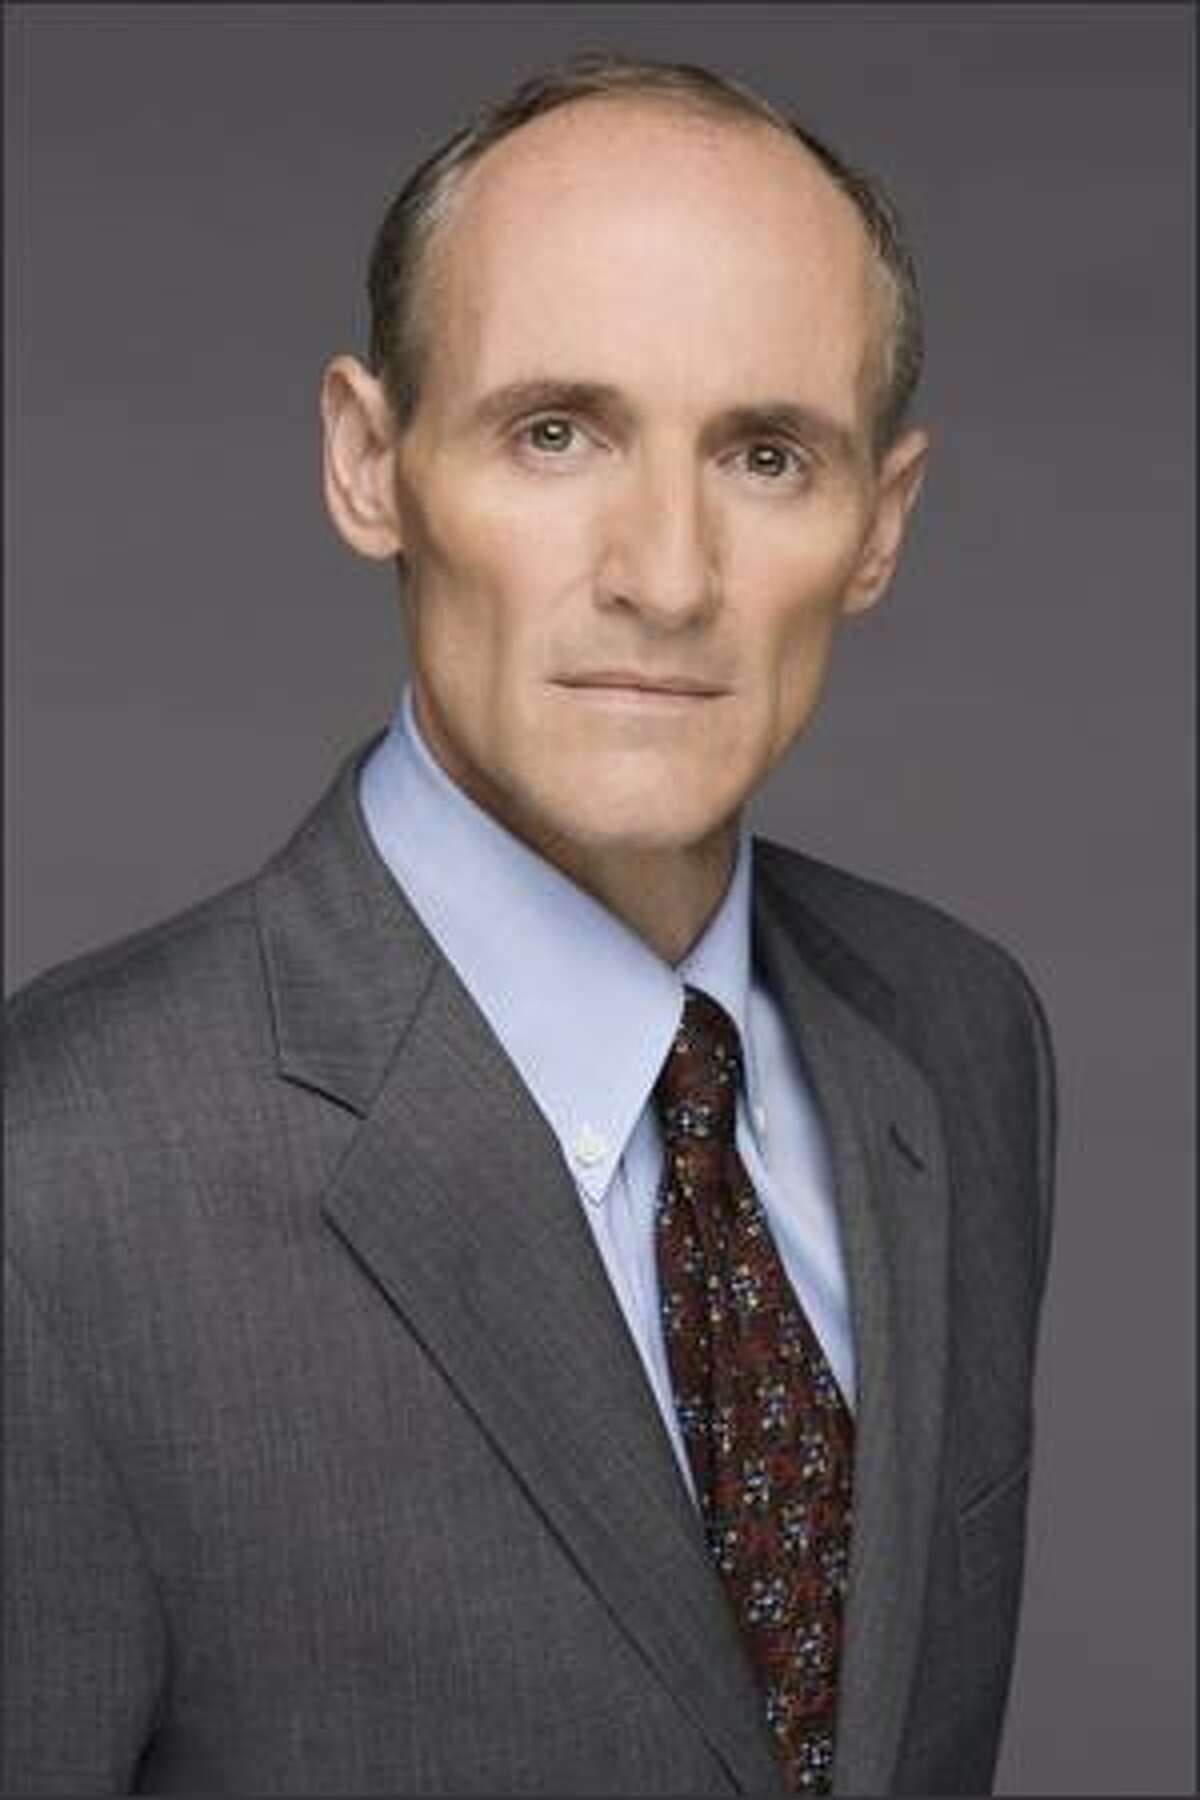 Colm Feore as Henry Taylor. The clock is ticking for